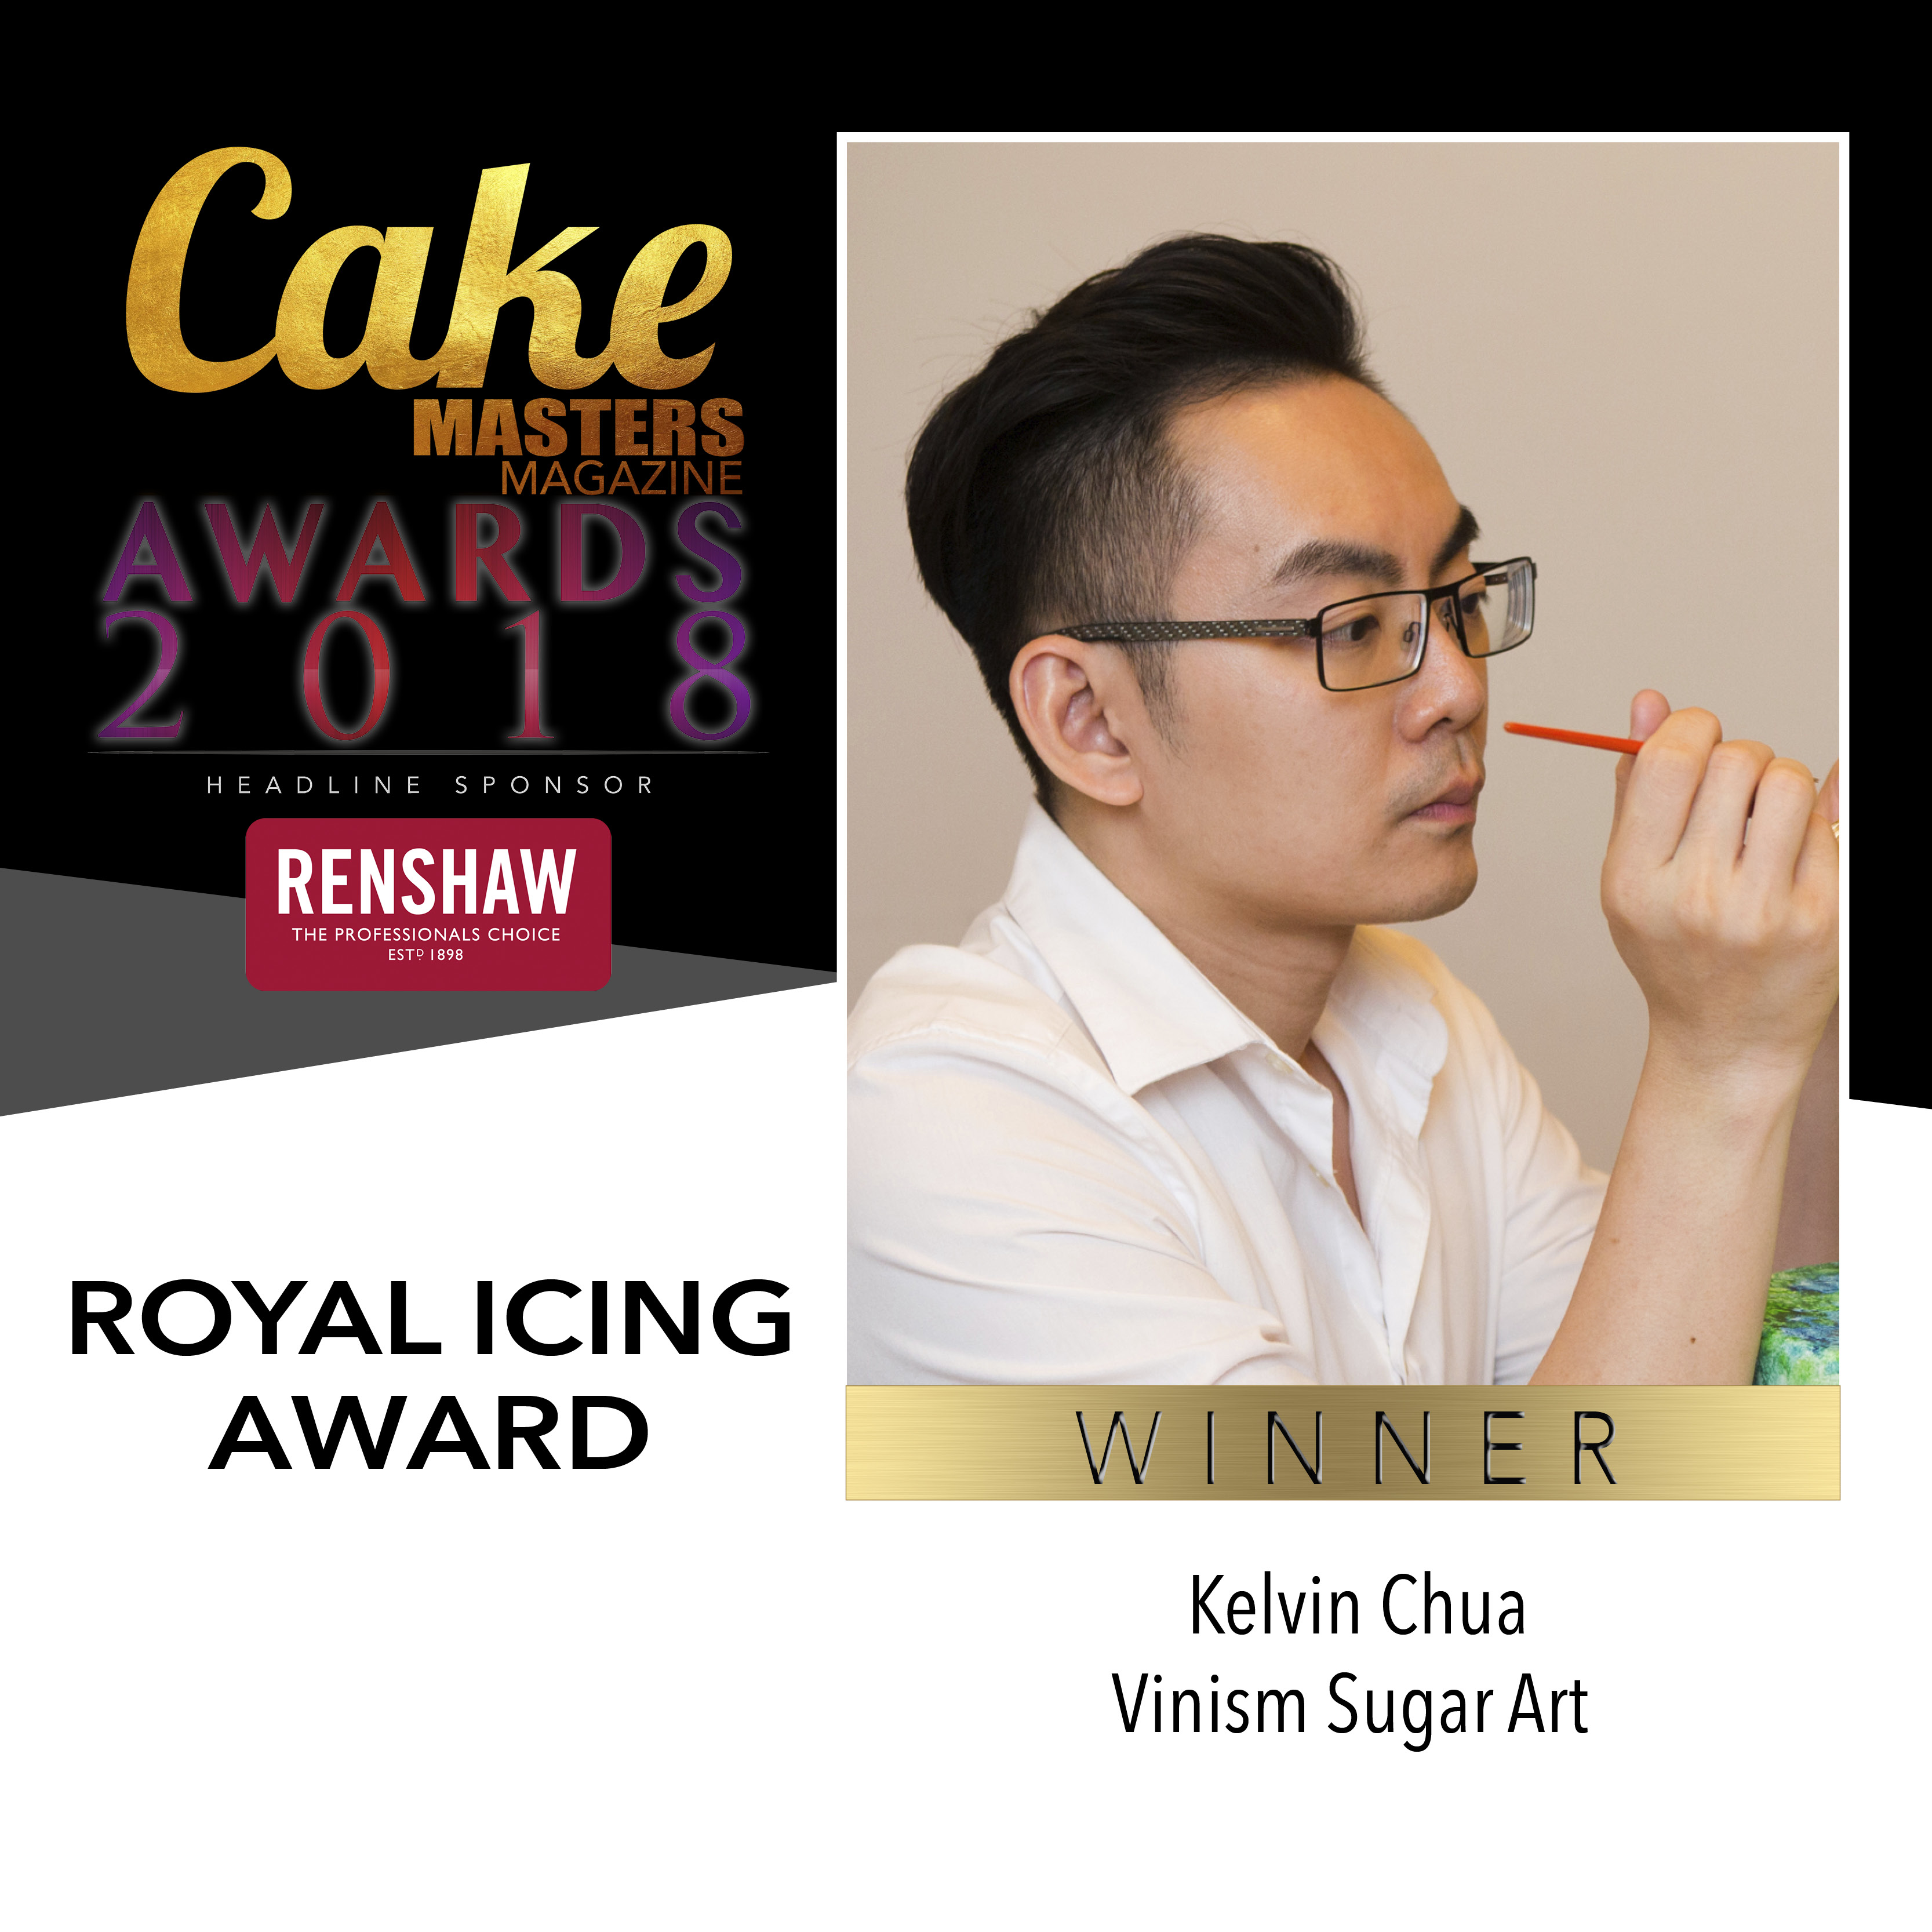 Royal Icing Award